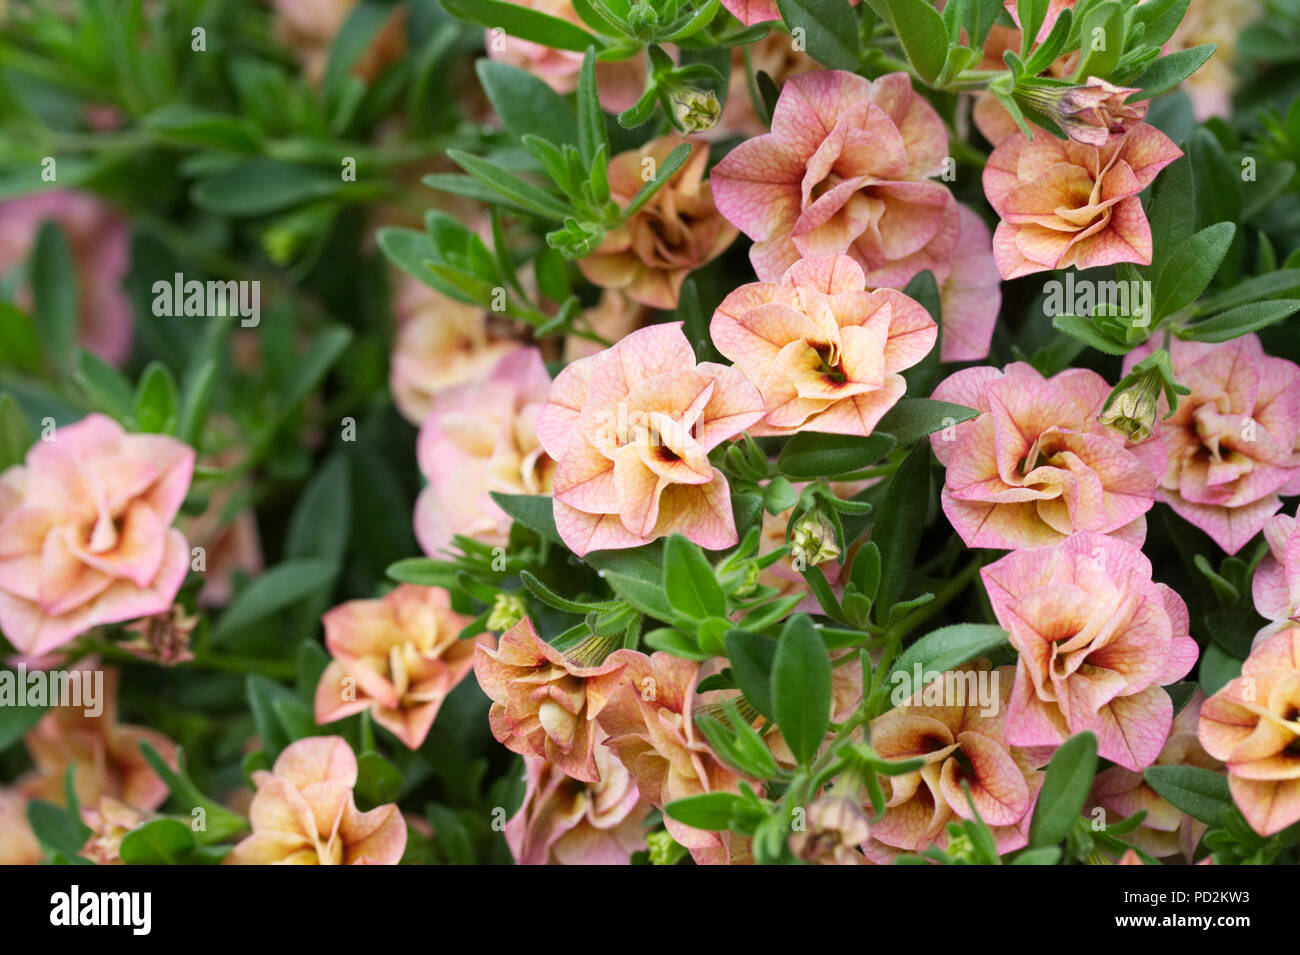 Calibrachoa Can Can Double Apricot flowers. - Stock Image